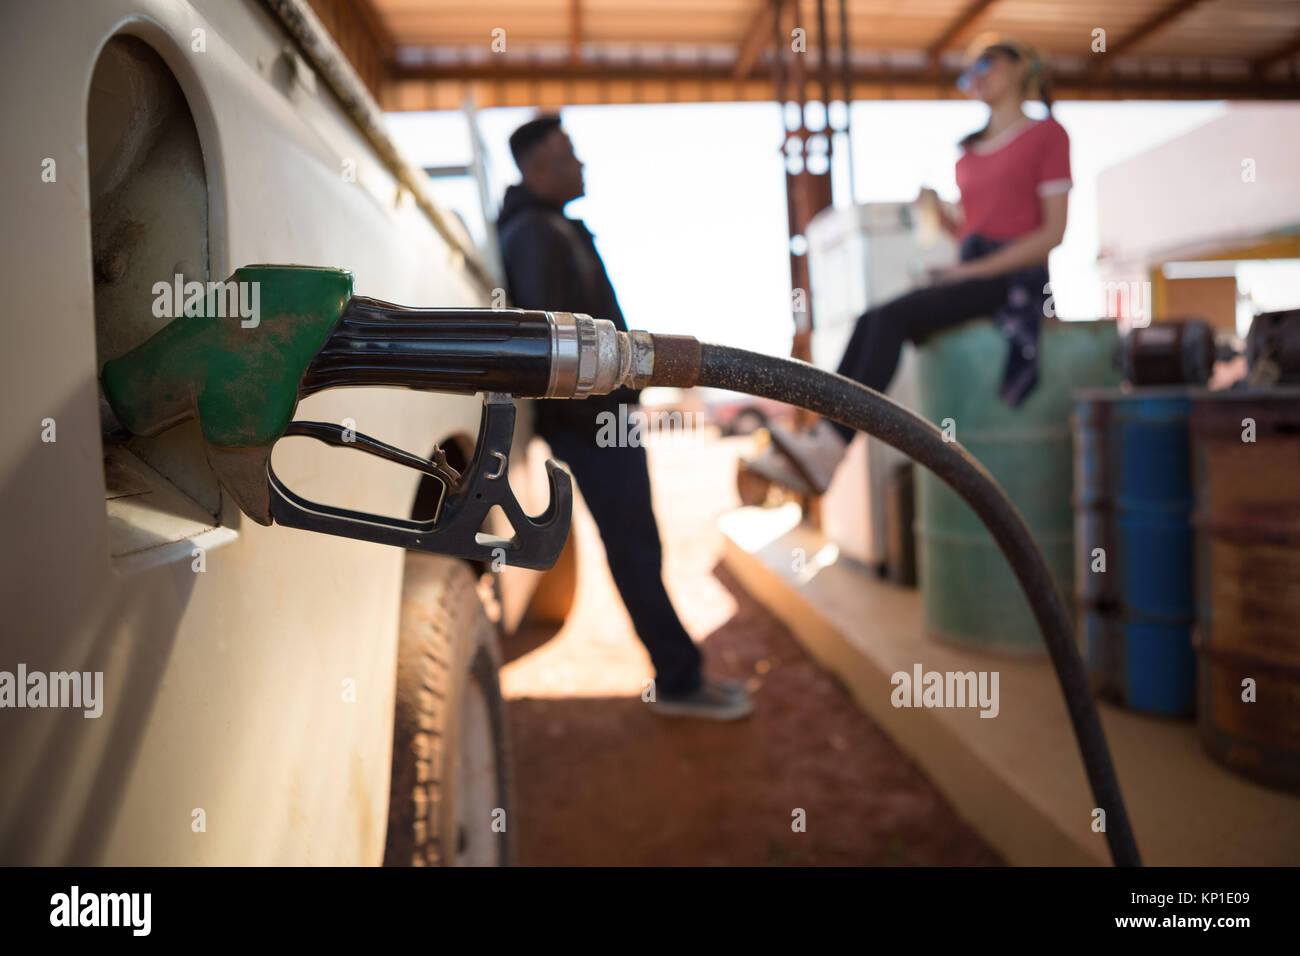 Close-up of automatic nozzles filling petrol into car tank Stock Photo